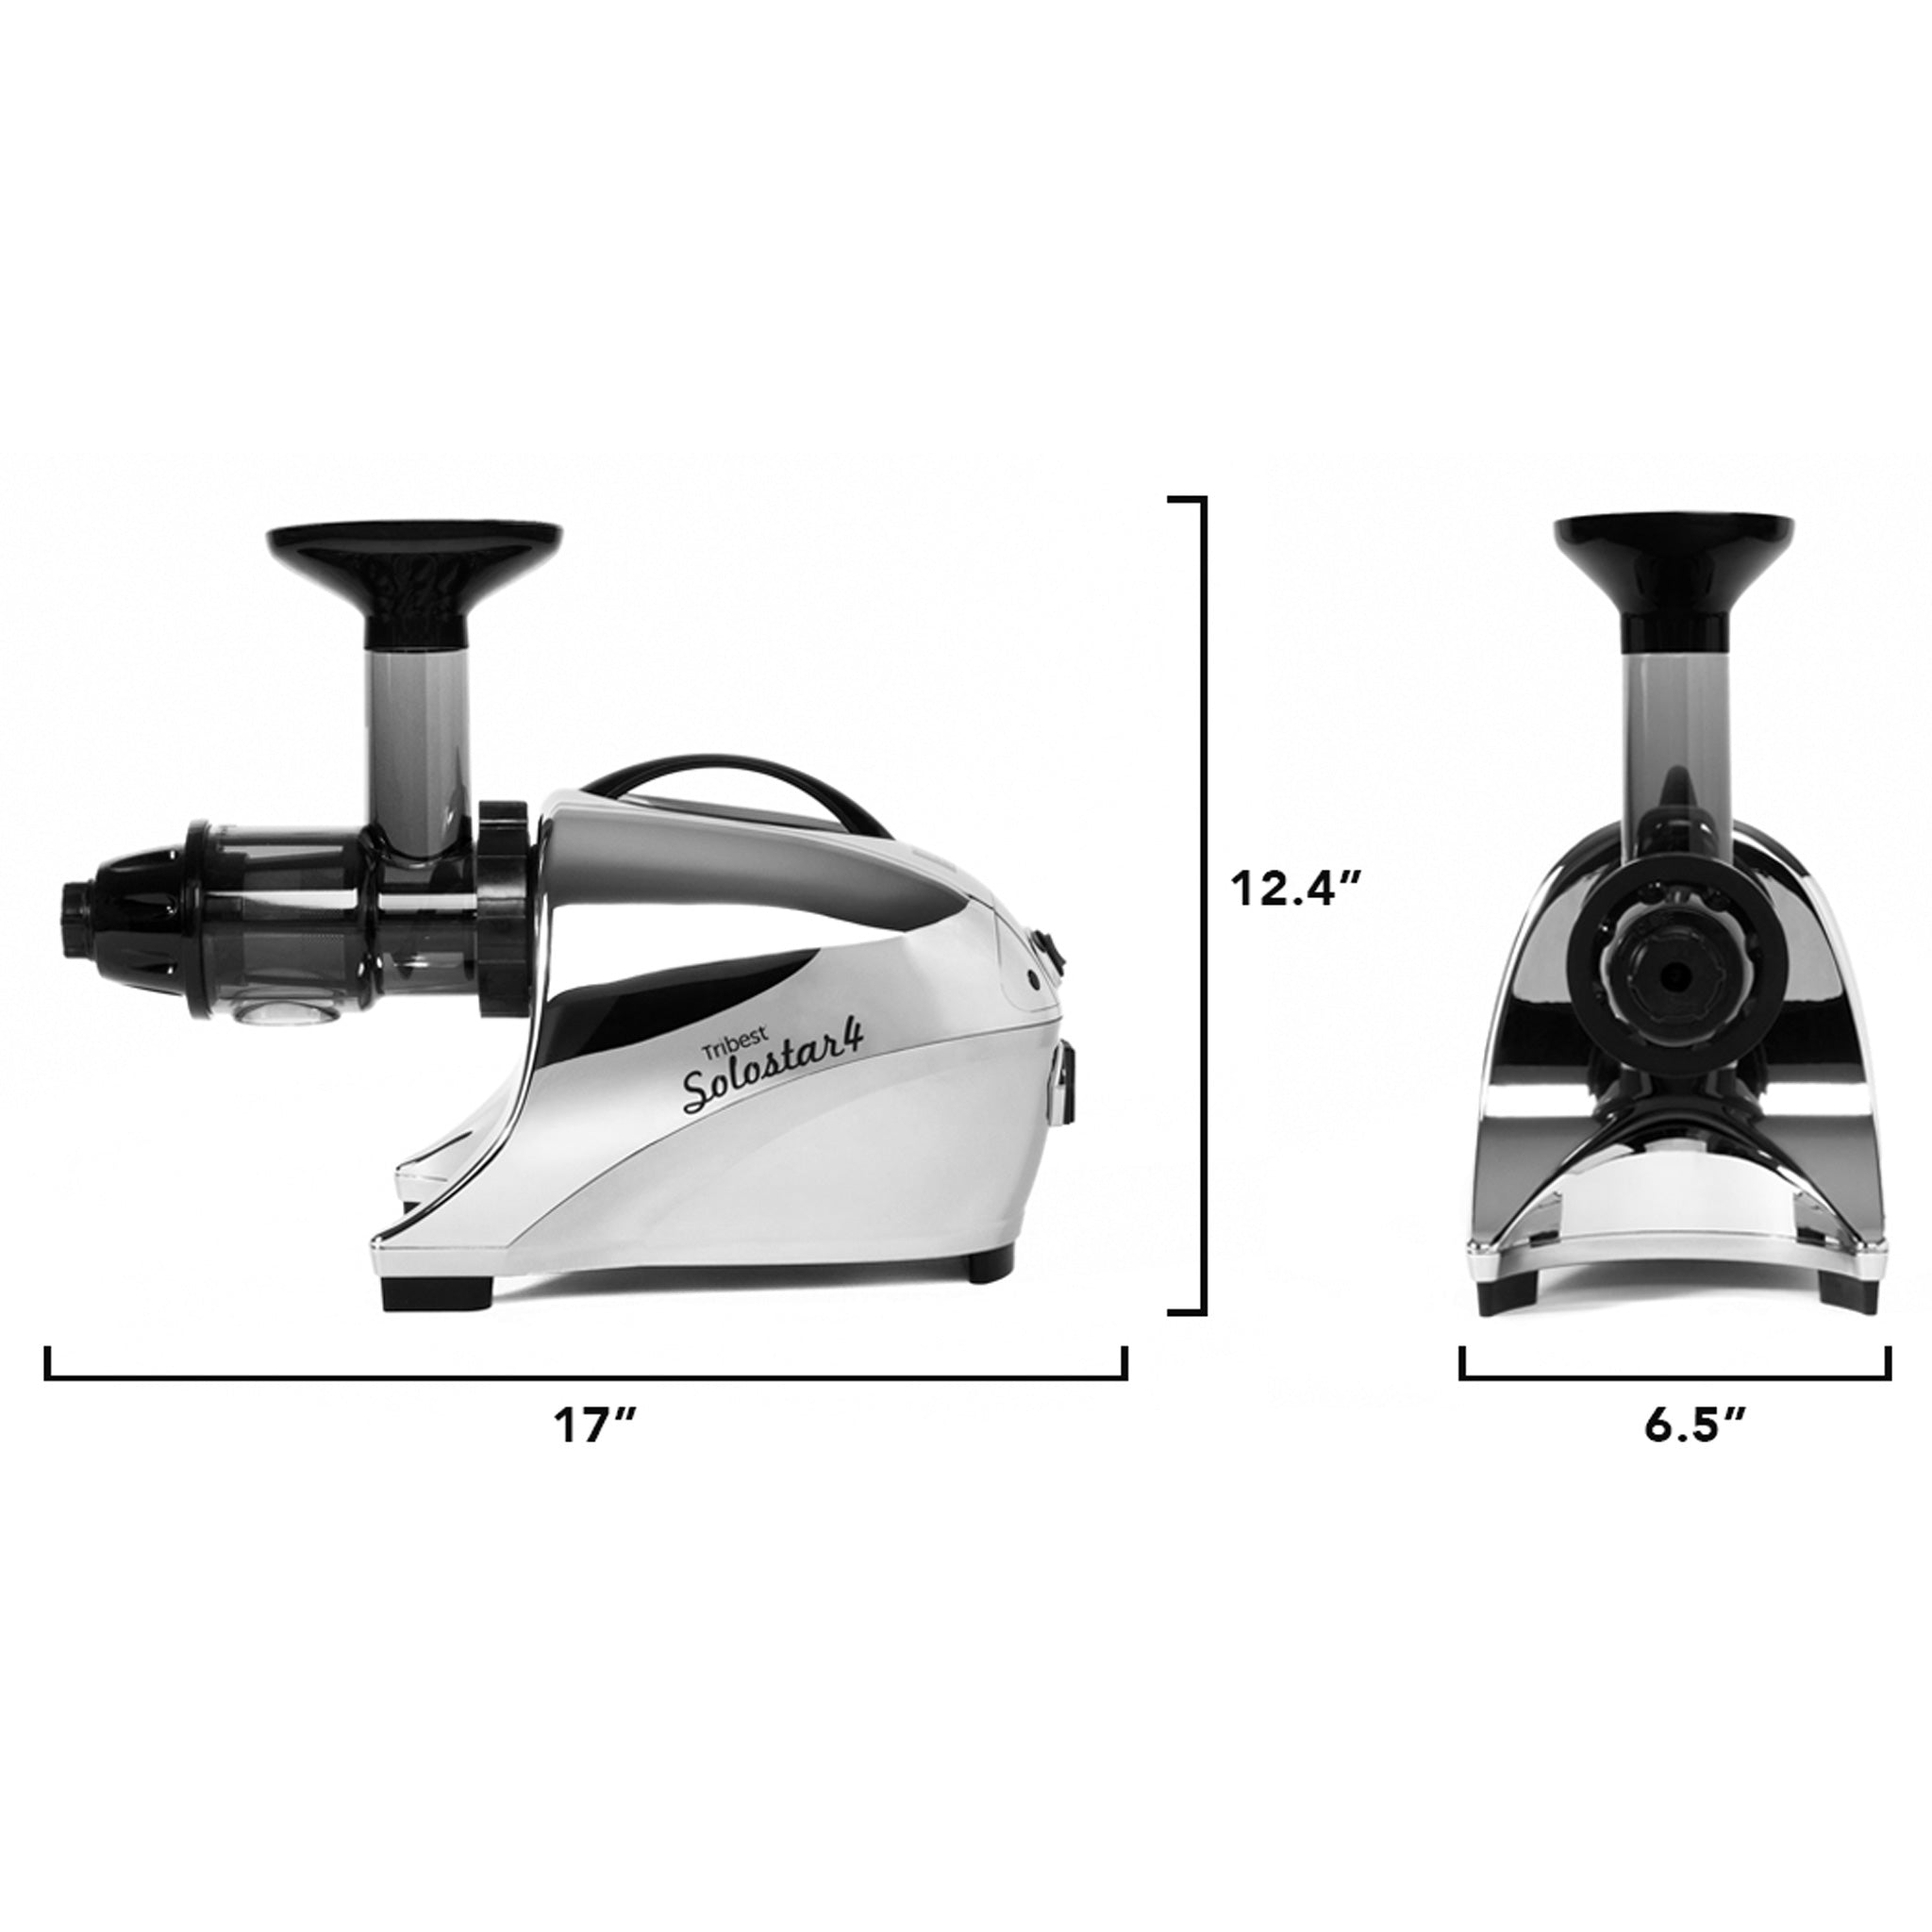 Solostar® 4 Horizontal Slow Masticating Juicer in Chome SS4-4250-B - Size 17